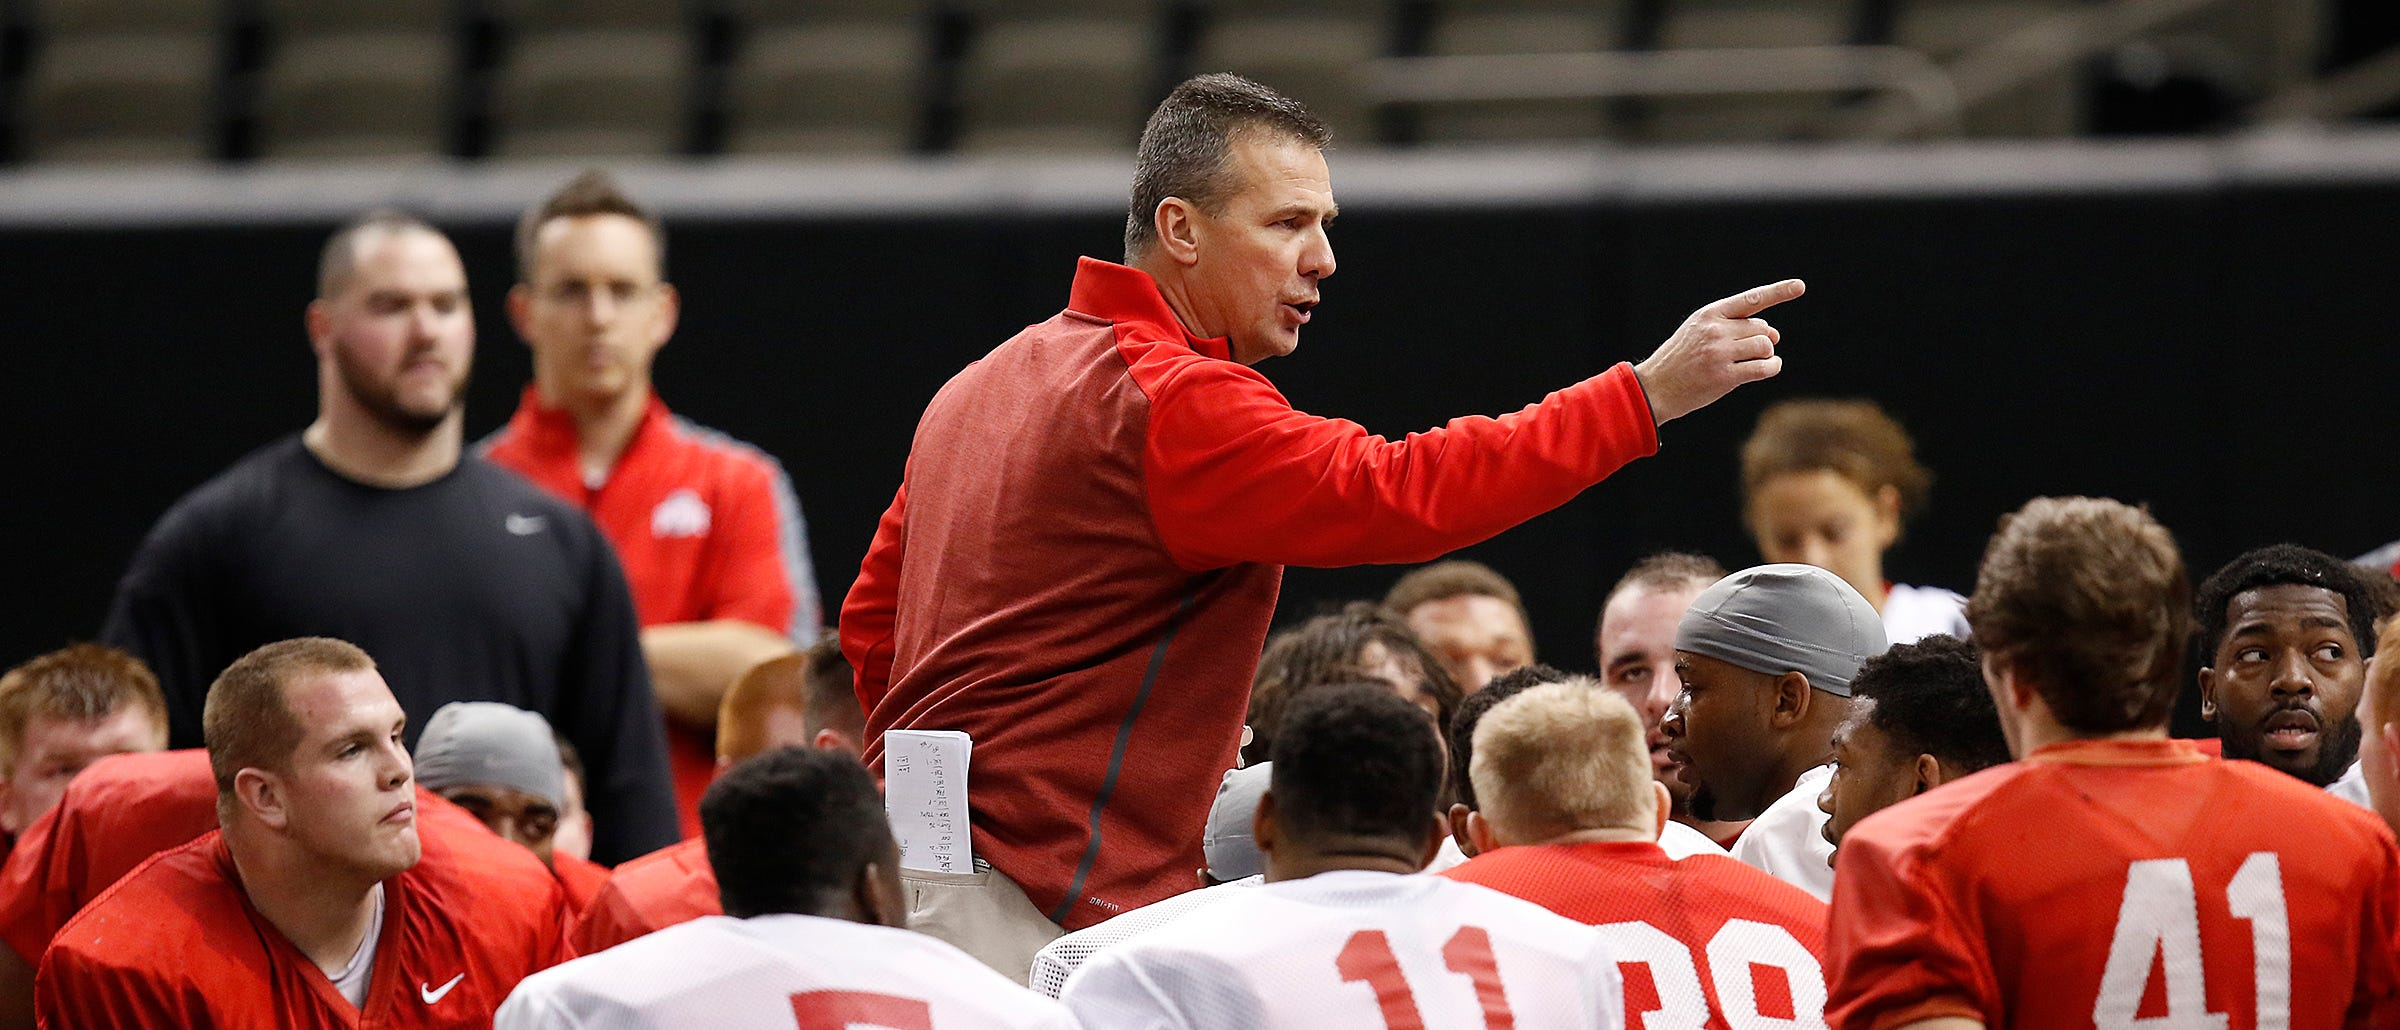 Ohio State Buckeyes coach Urban Meyer talks with his team in a huddle during practice at the Mercedes-Benz Superdome in New Orleans on Dec. 29, 2014.